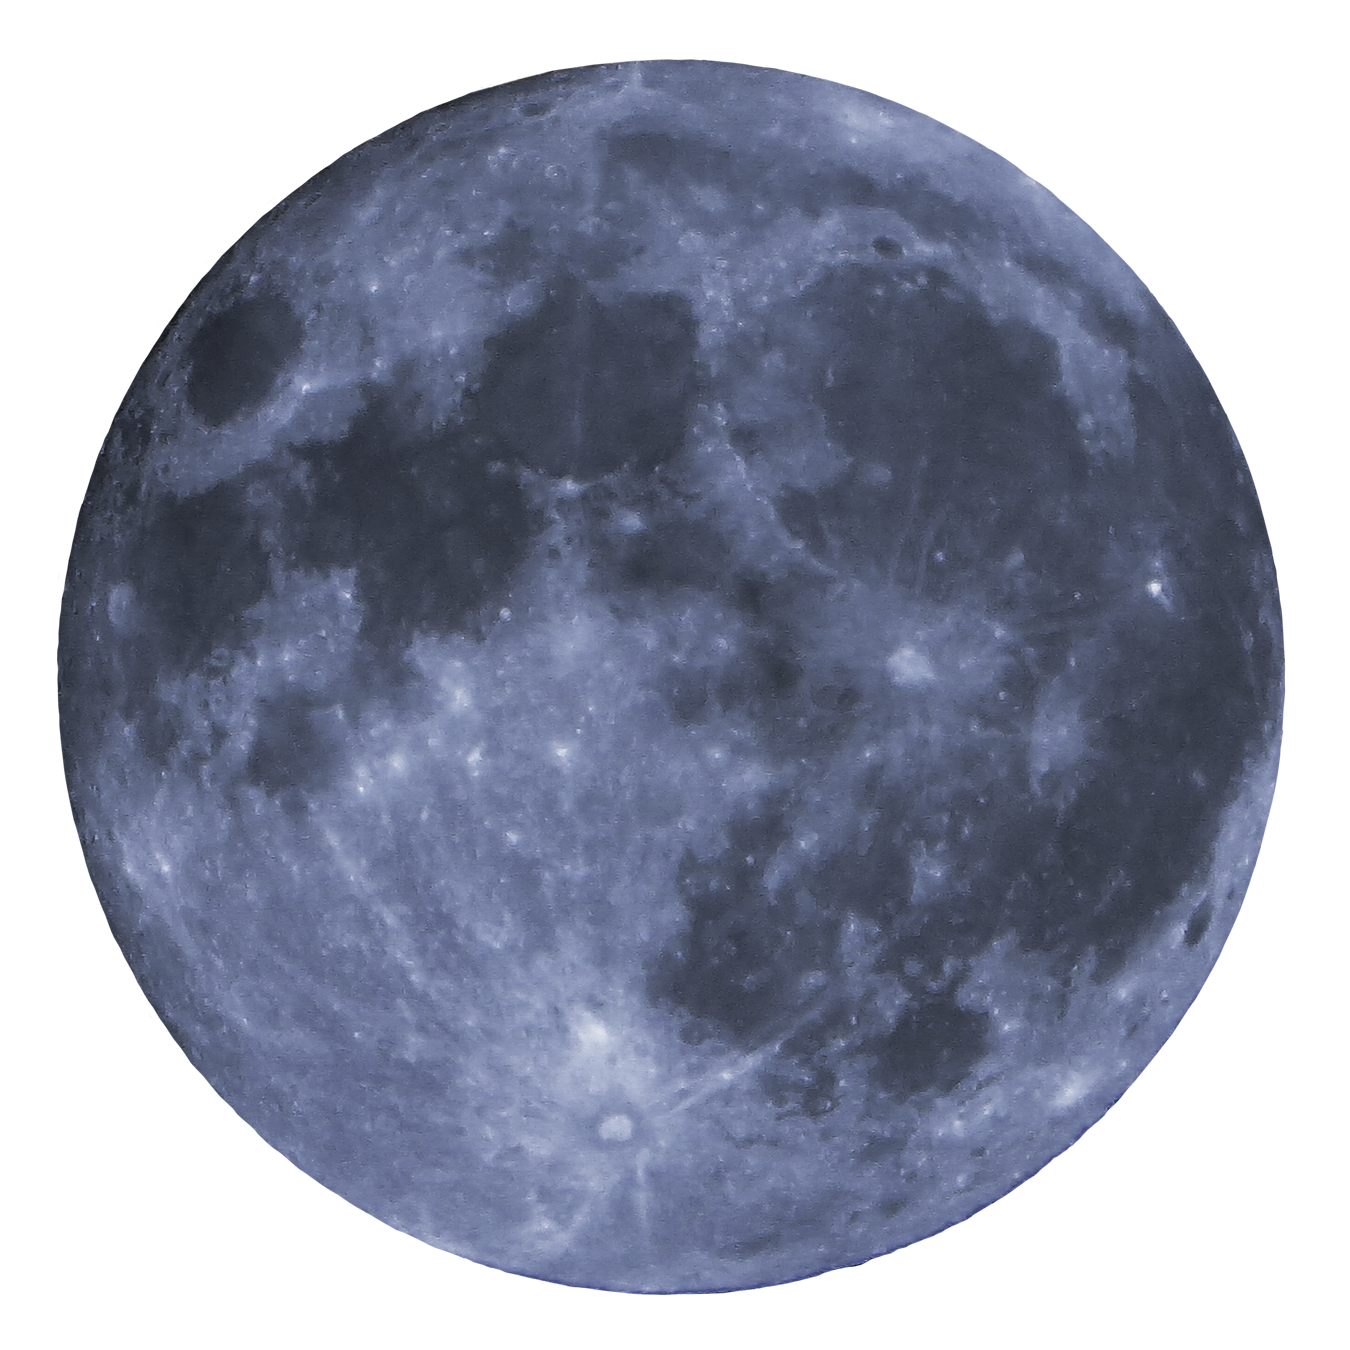 Night clipart full moon night. Png image purepng free